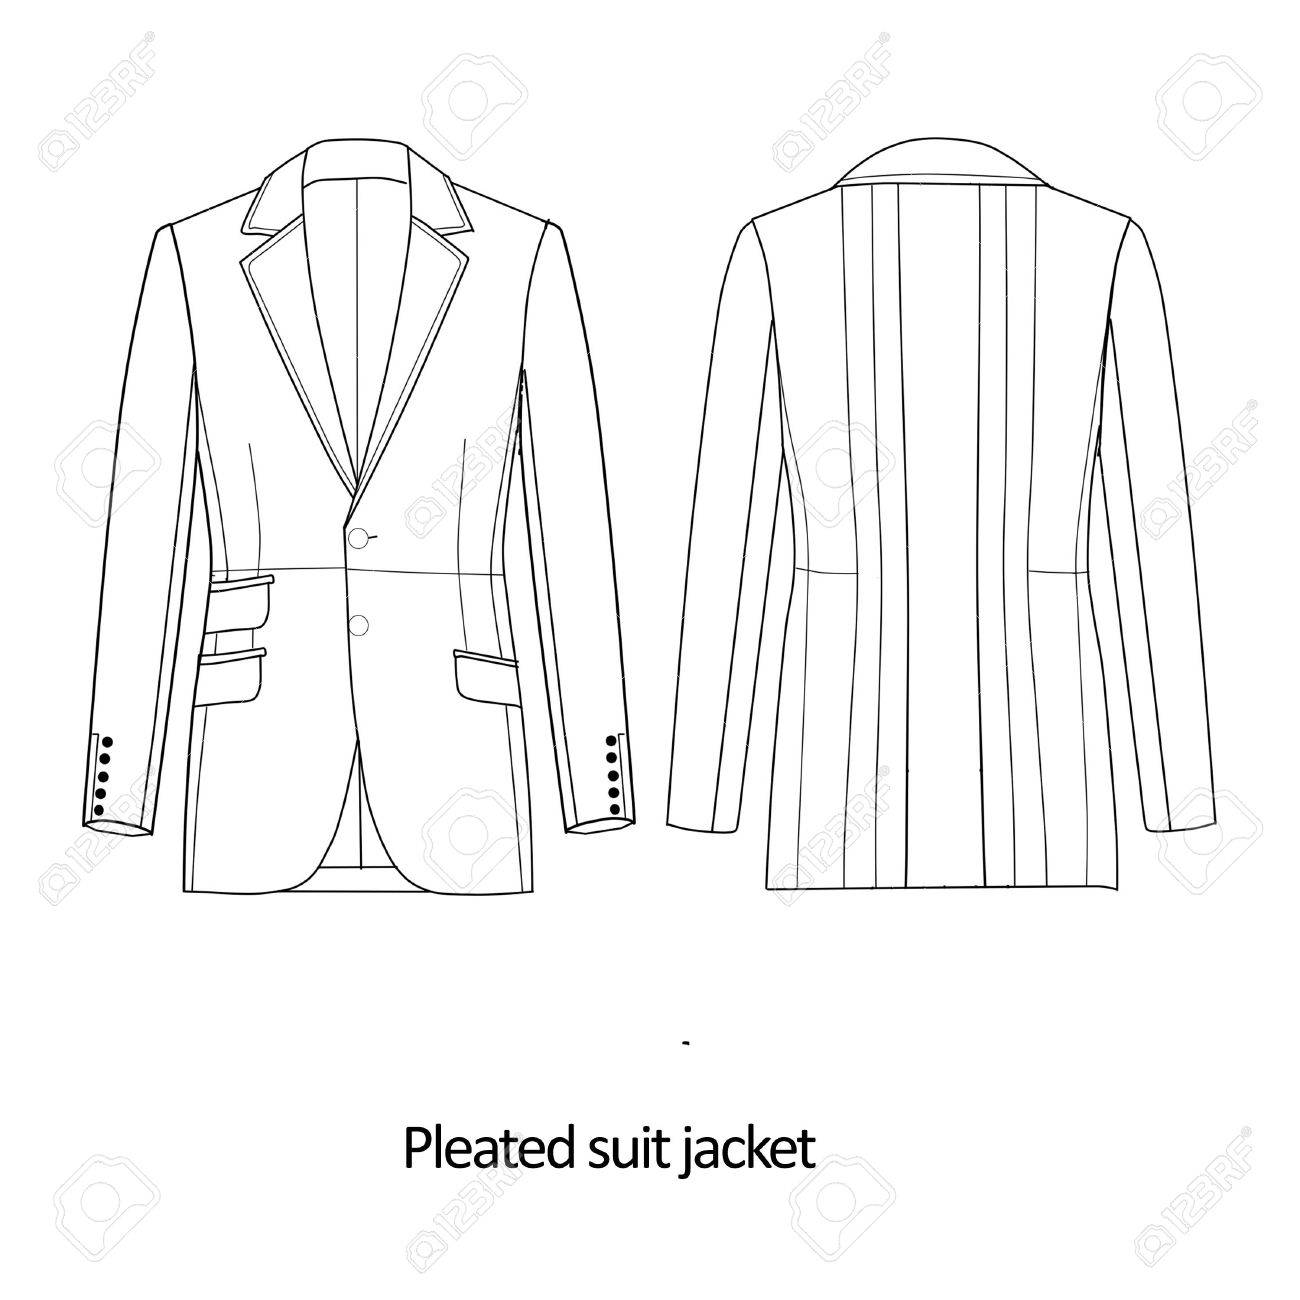 Flat Fashion Sketch Template - Man Suit Jacket Stock Photo, Picture ...